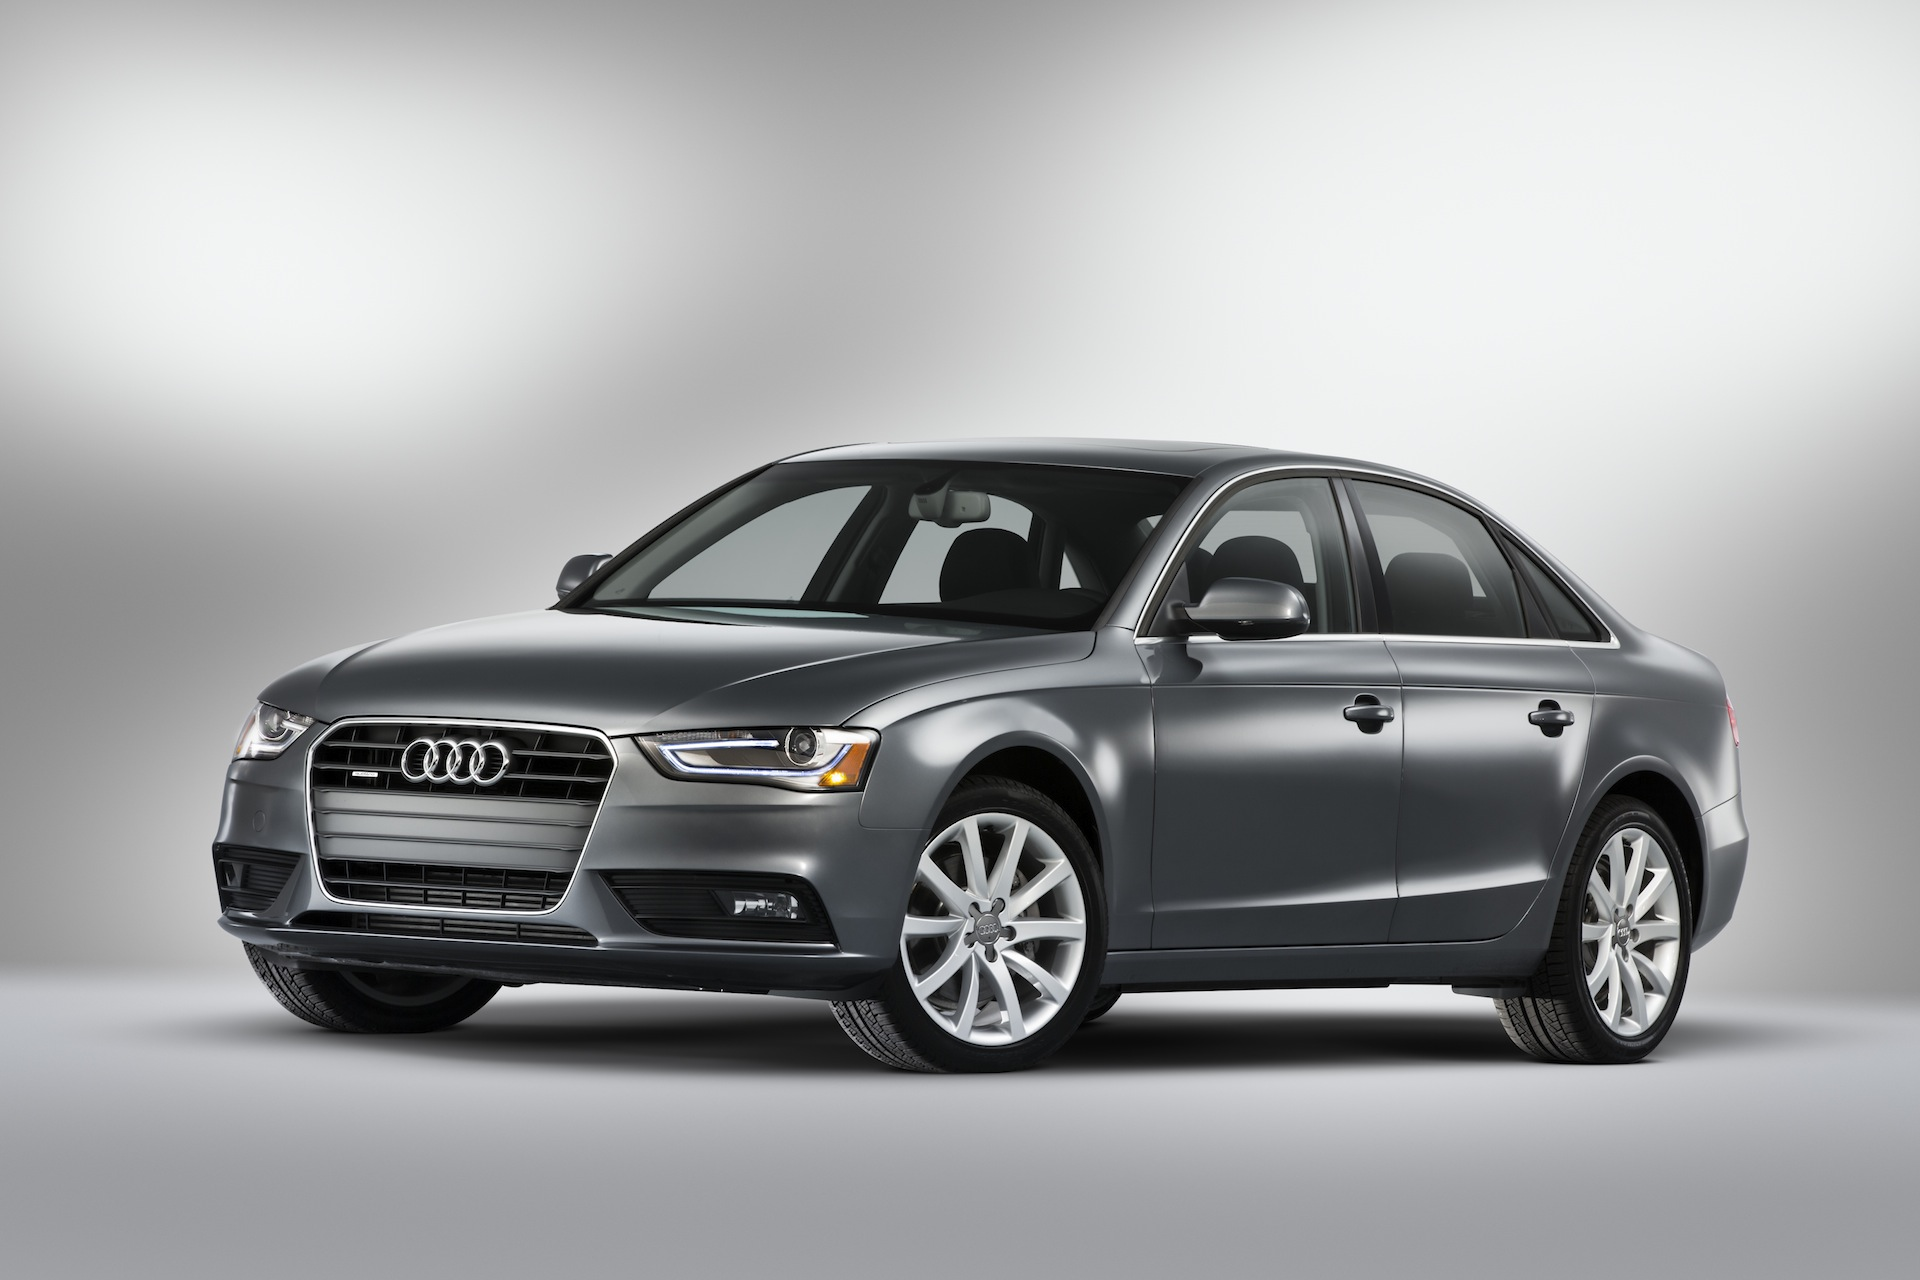 2014 audi a4 review ratings specs prices and photos the car connection. Black Bedroom Furniture Sets. Home Design Ideas